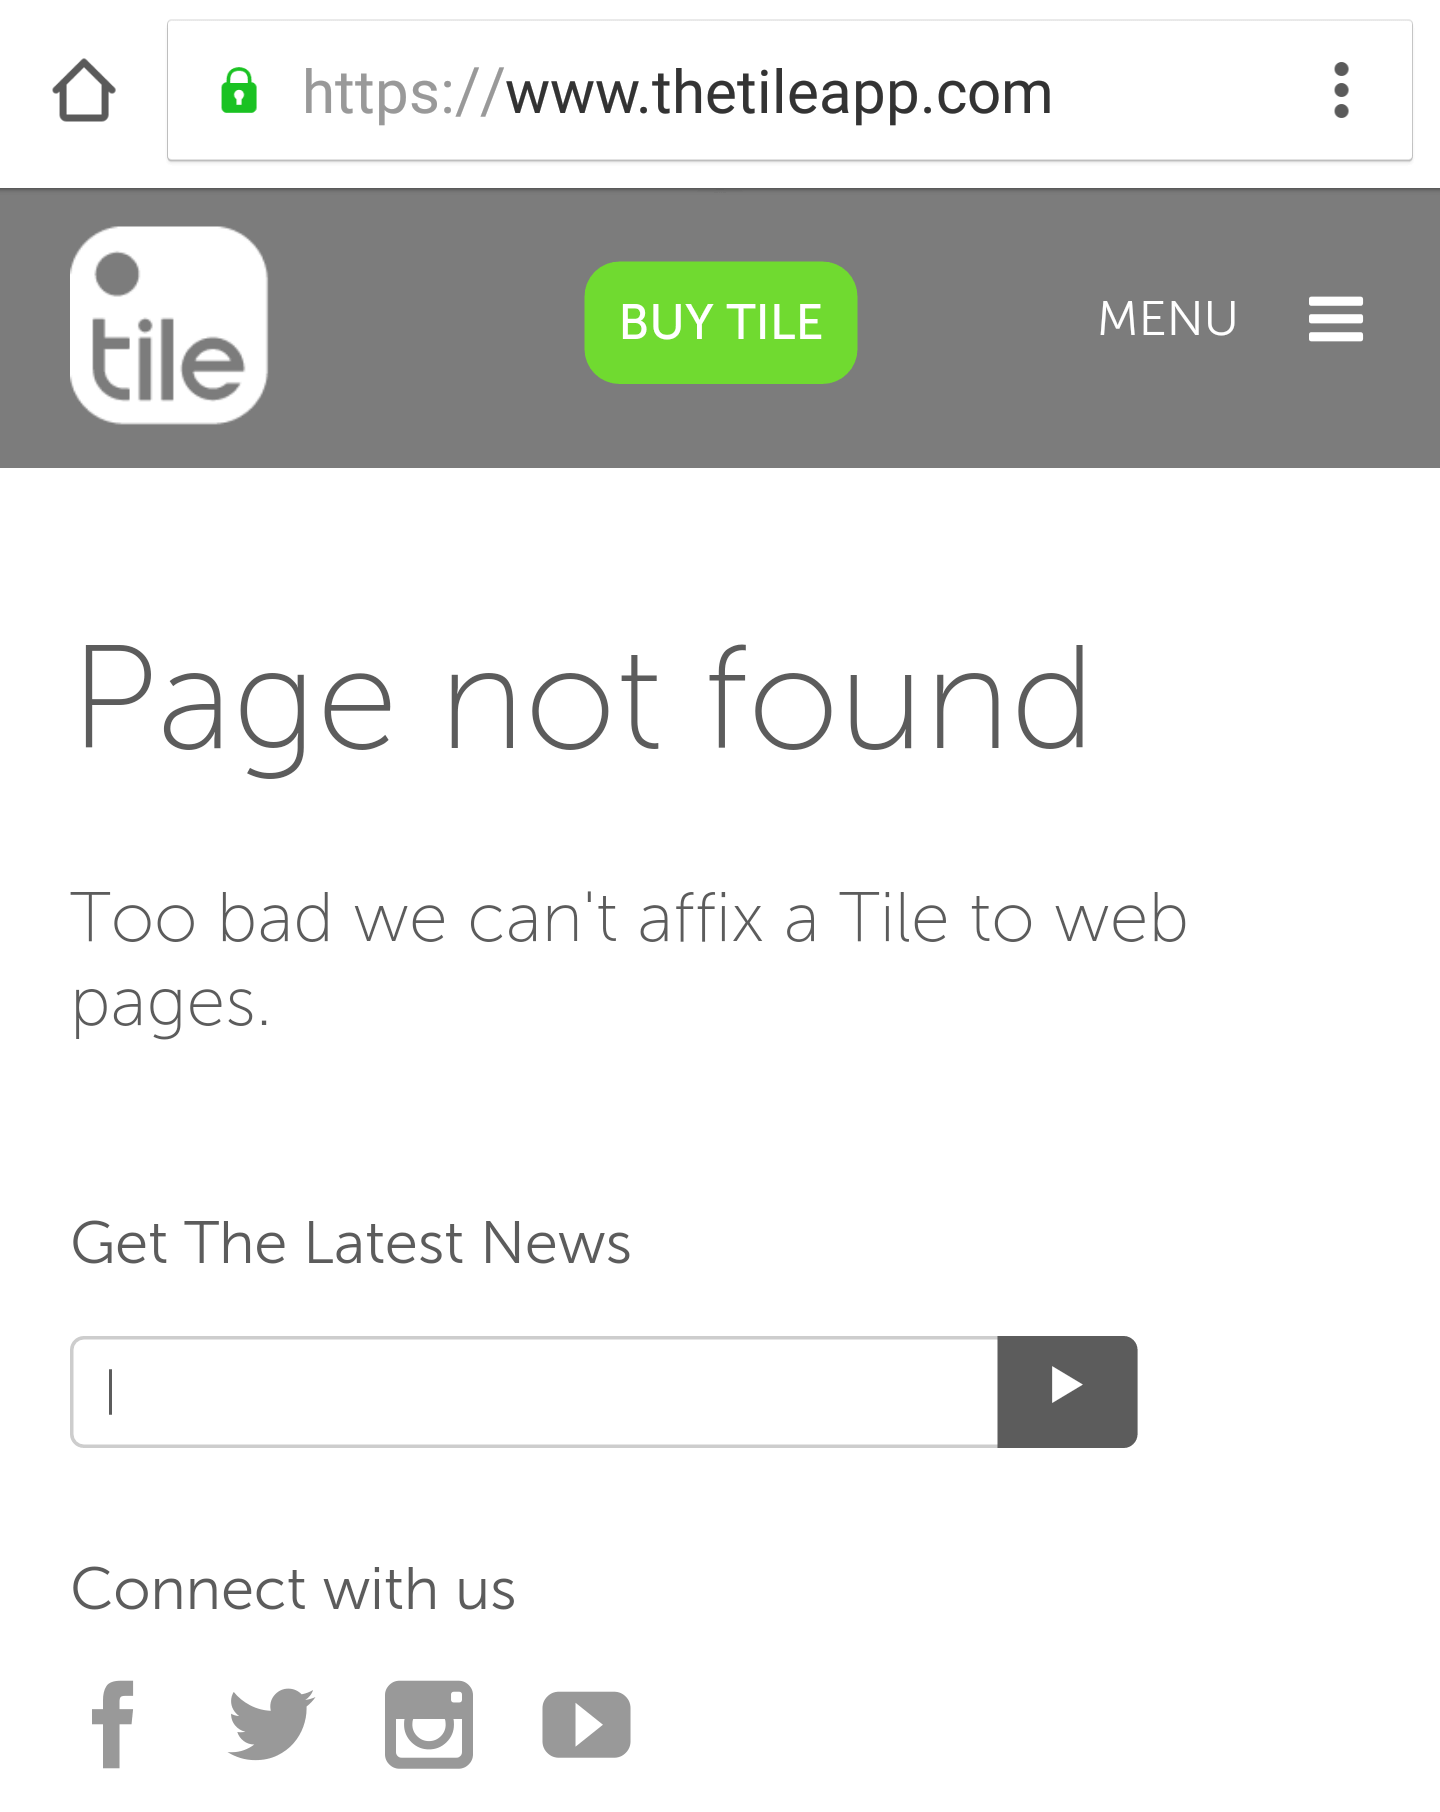 Tile's friendly error pages covers the basics, no more.